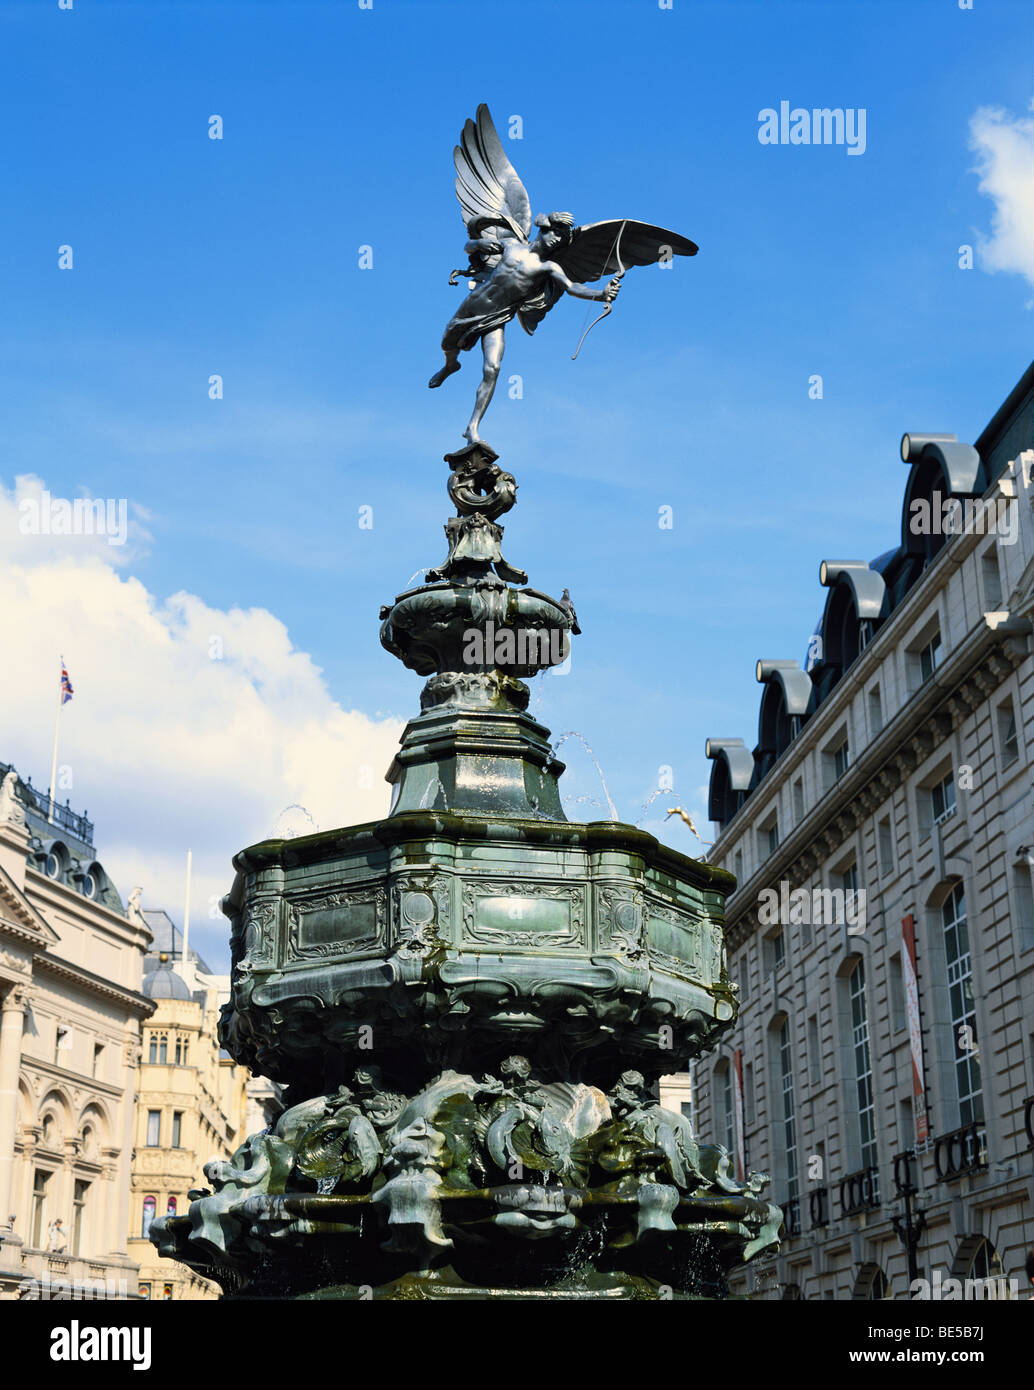 Statue of Eros Piccadilly Circus London England GB - Stock Image